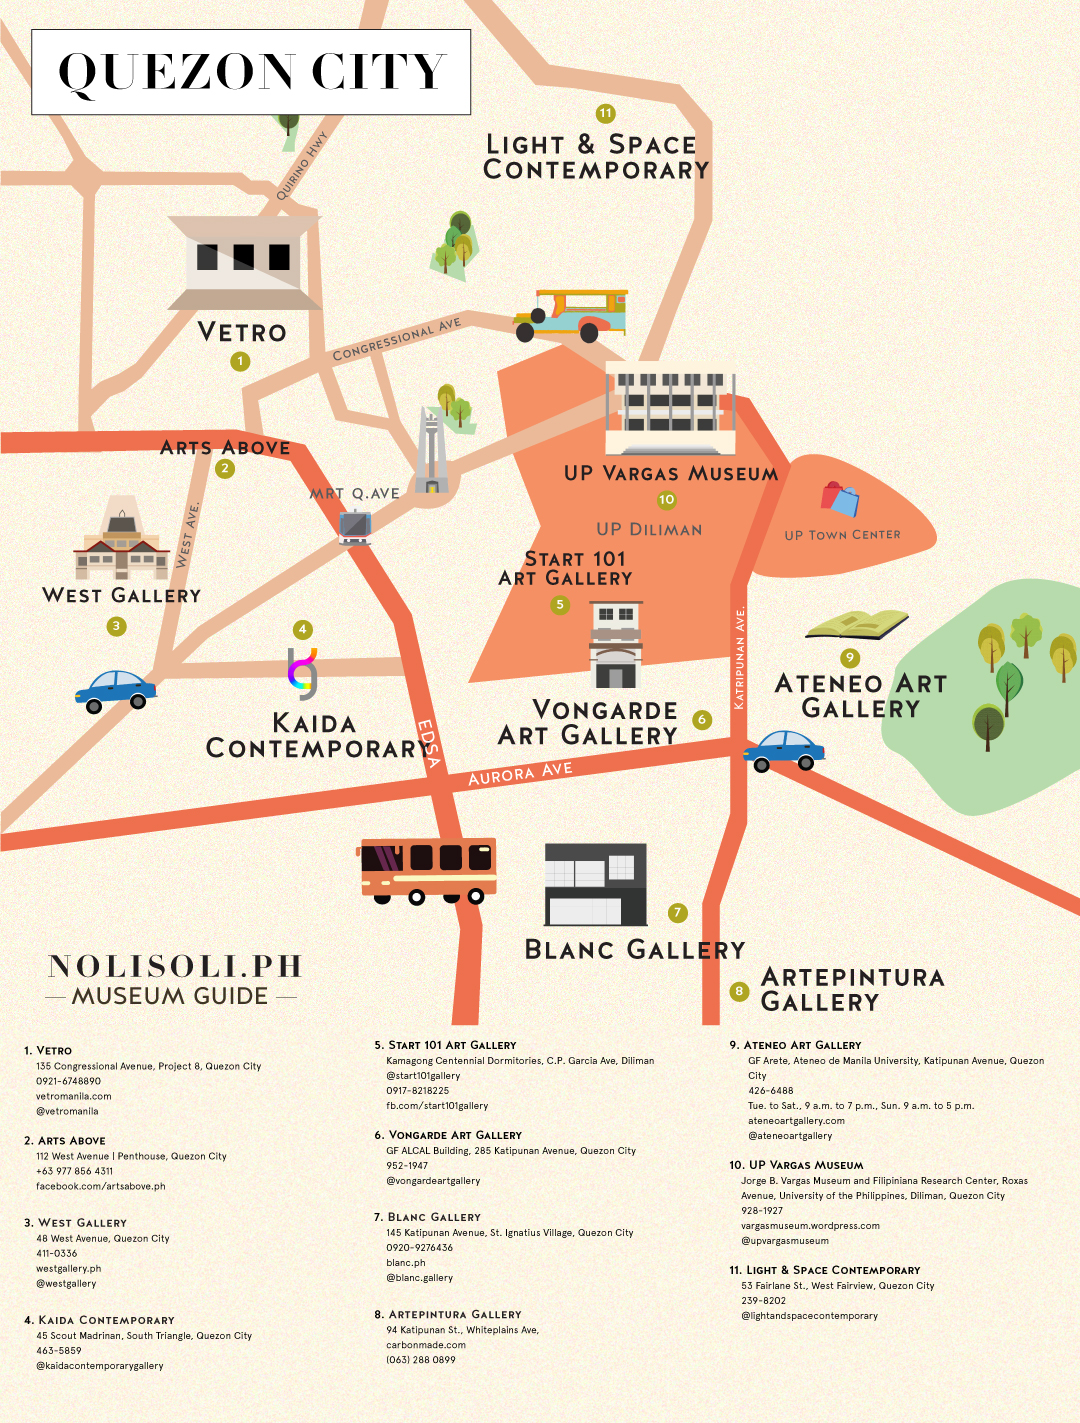 nolisoli museum art gallery map quezon city